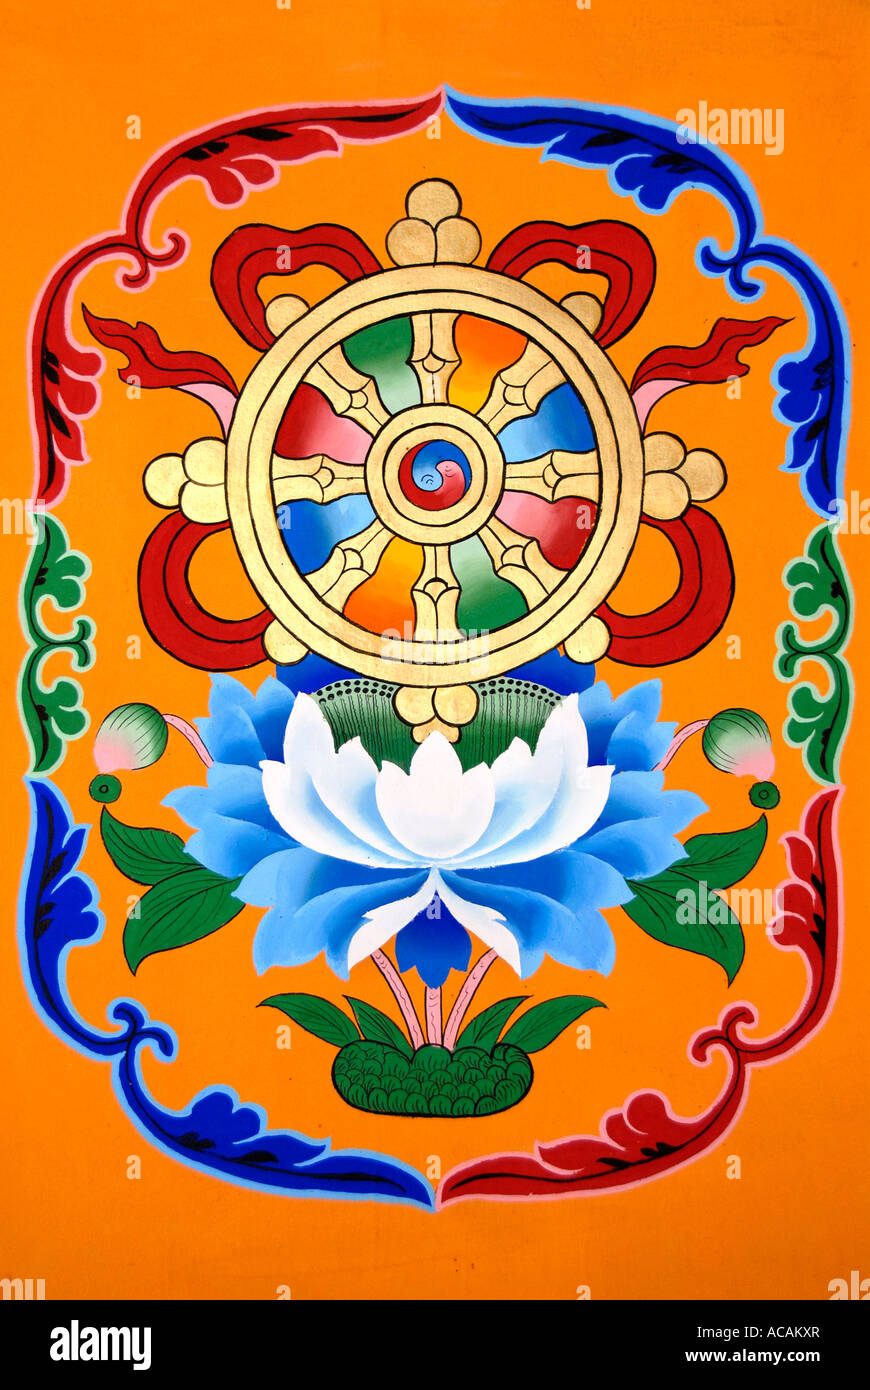 Tibetan buddhism painting symbol wheel of life above lotus flower tibetan buddhism painting symbol wheel of life above lotus flower jokhang lhasa tibet china buycottarizona